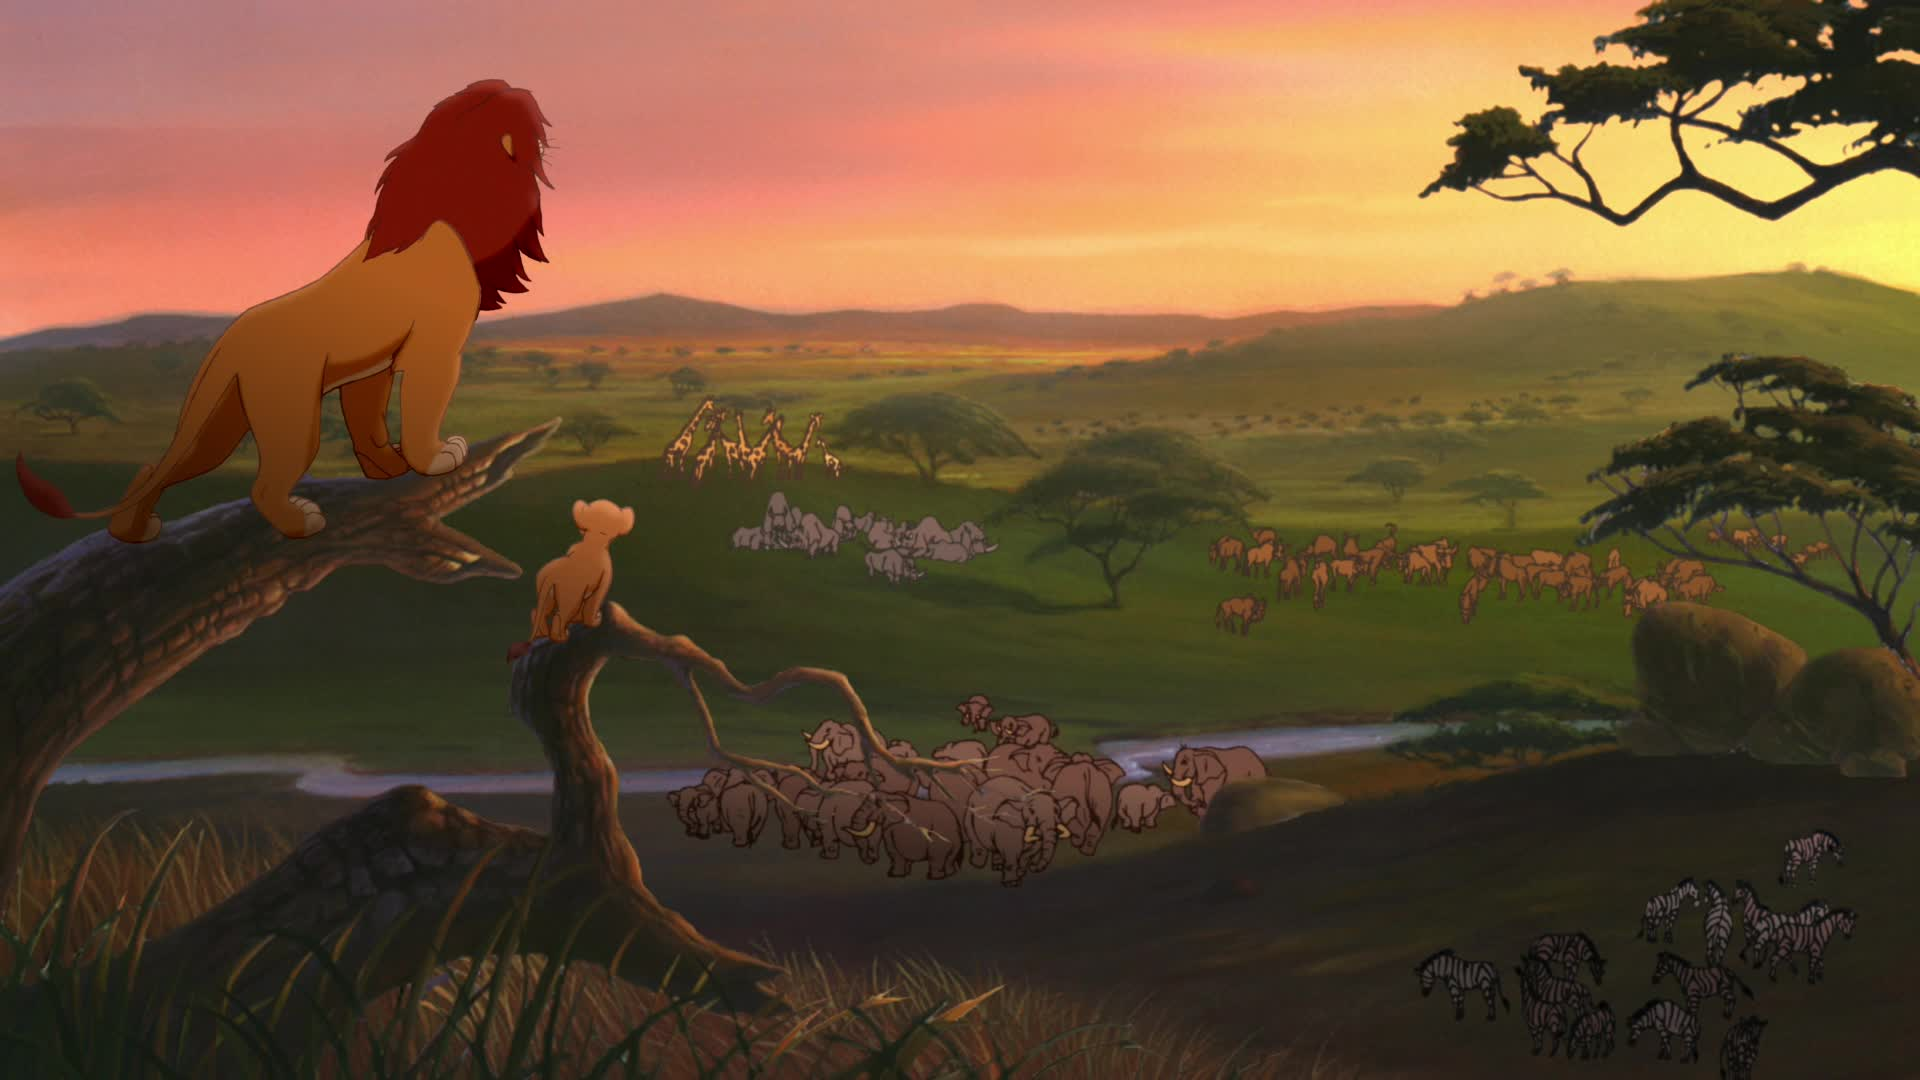 the lion king s inspiration